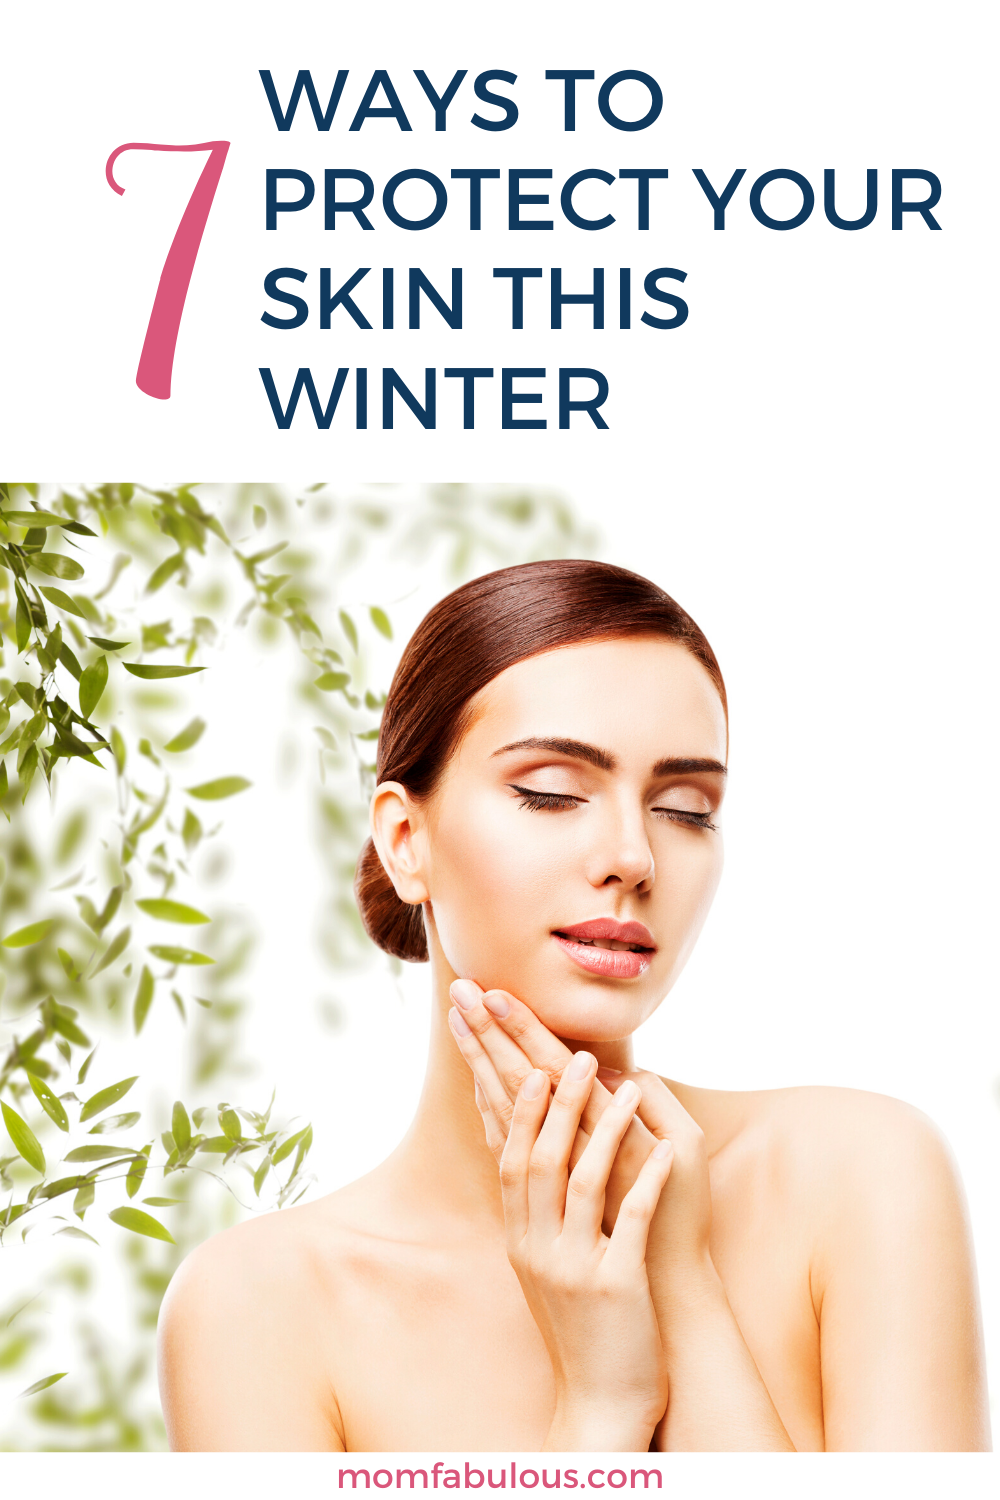 7 Ways To Protect Your Skin This Winter Skin Care Secrets Winter Beauty Tips Better Skin